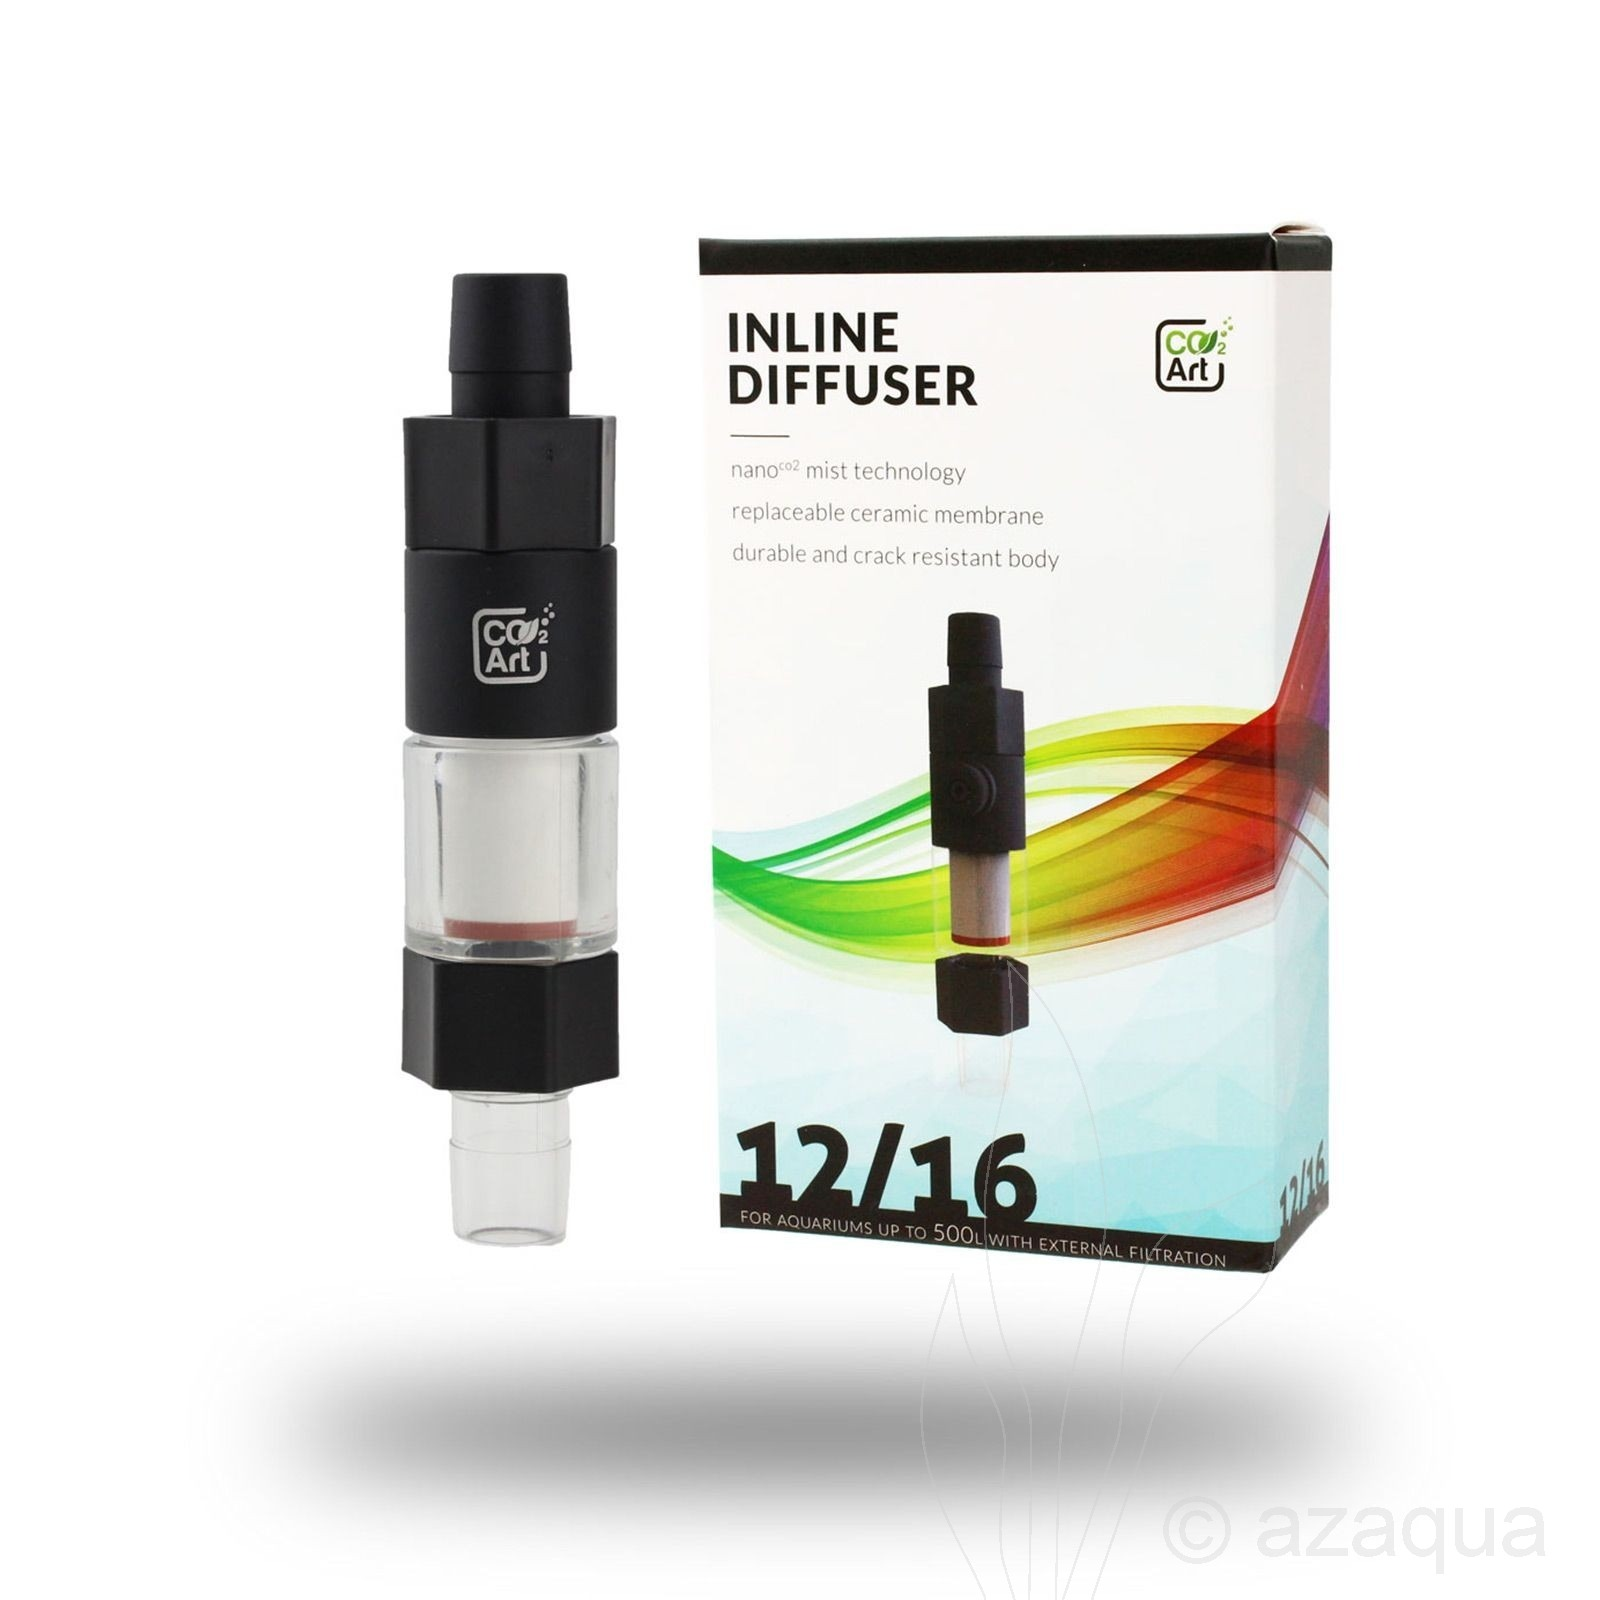 CO2Art NEW Inline Diffuser 12/16 - 13mm